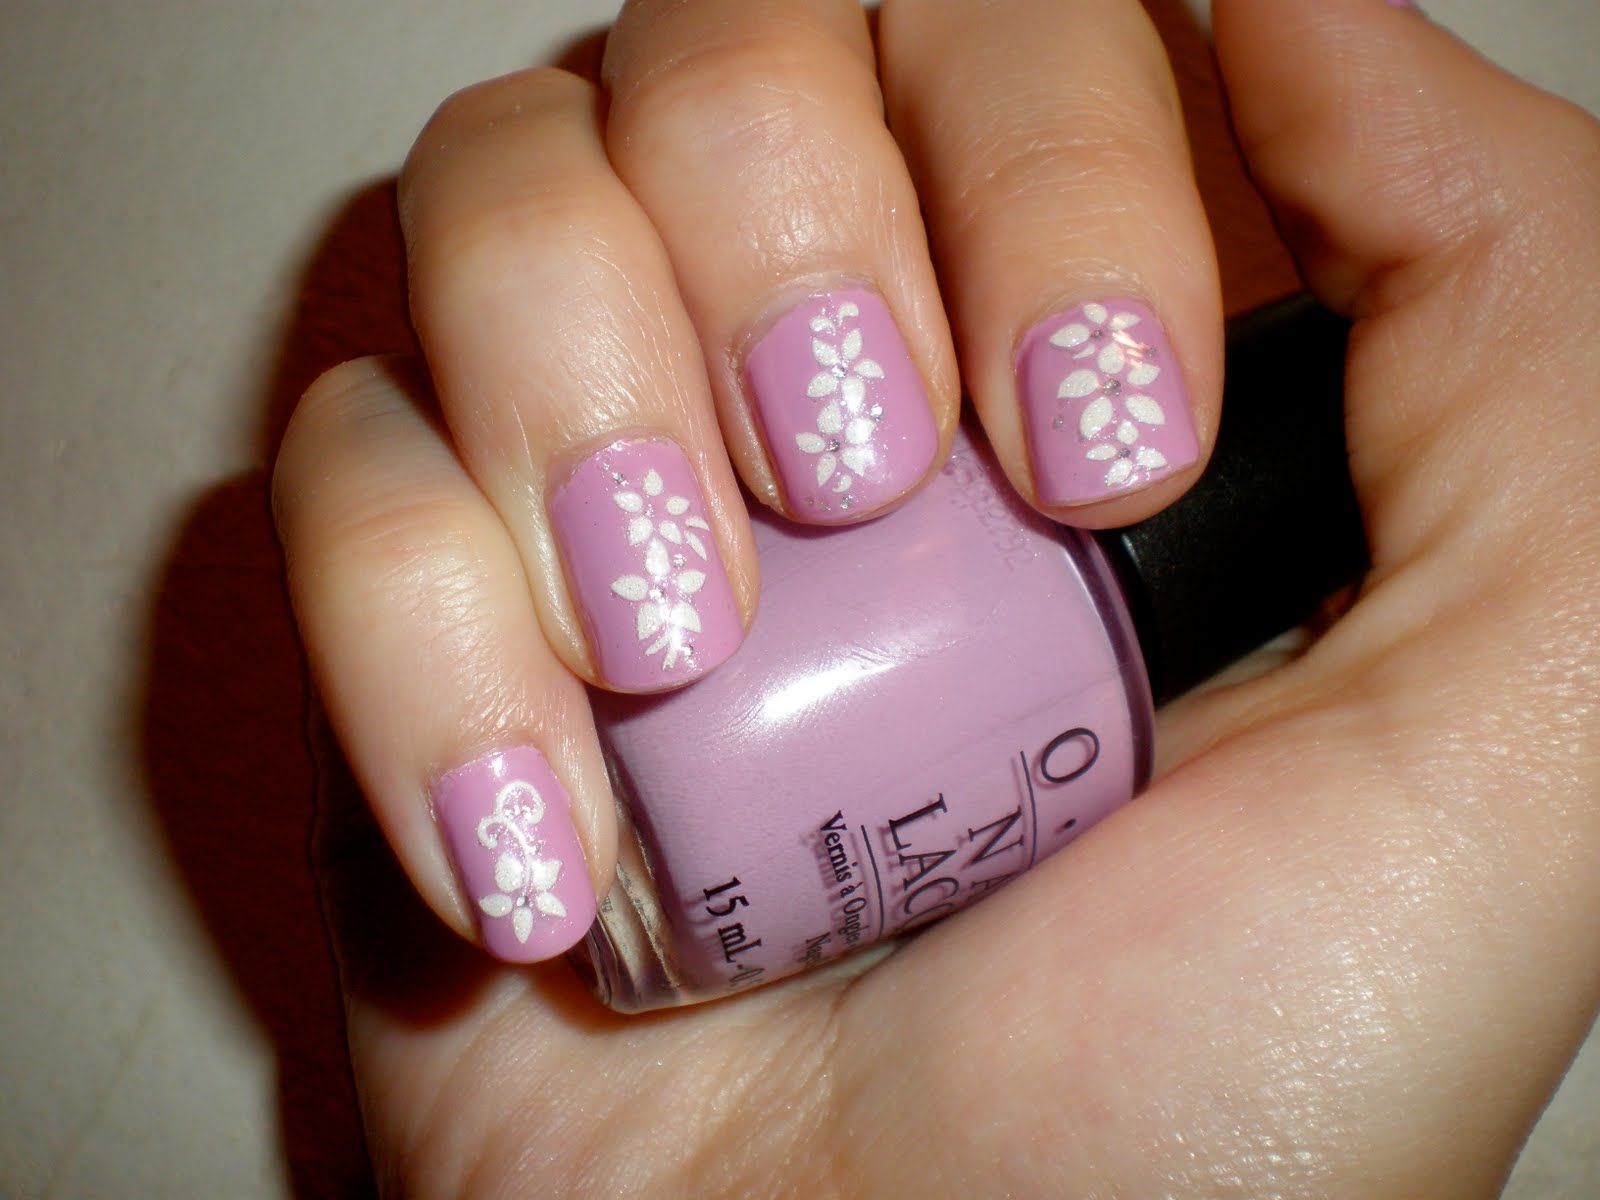 easy nail ideas purple flower easy nail polish designs nail ideas inspiration easy nail design - Simple Nail Design Ideas